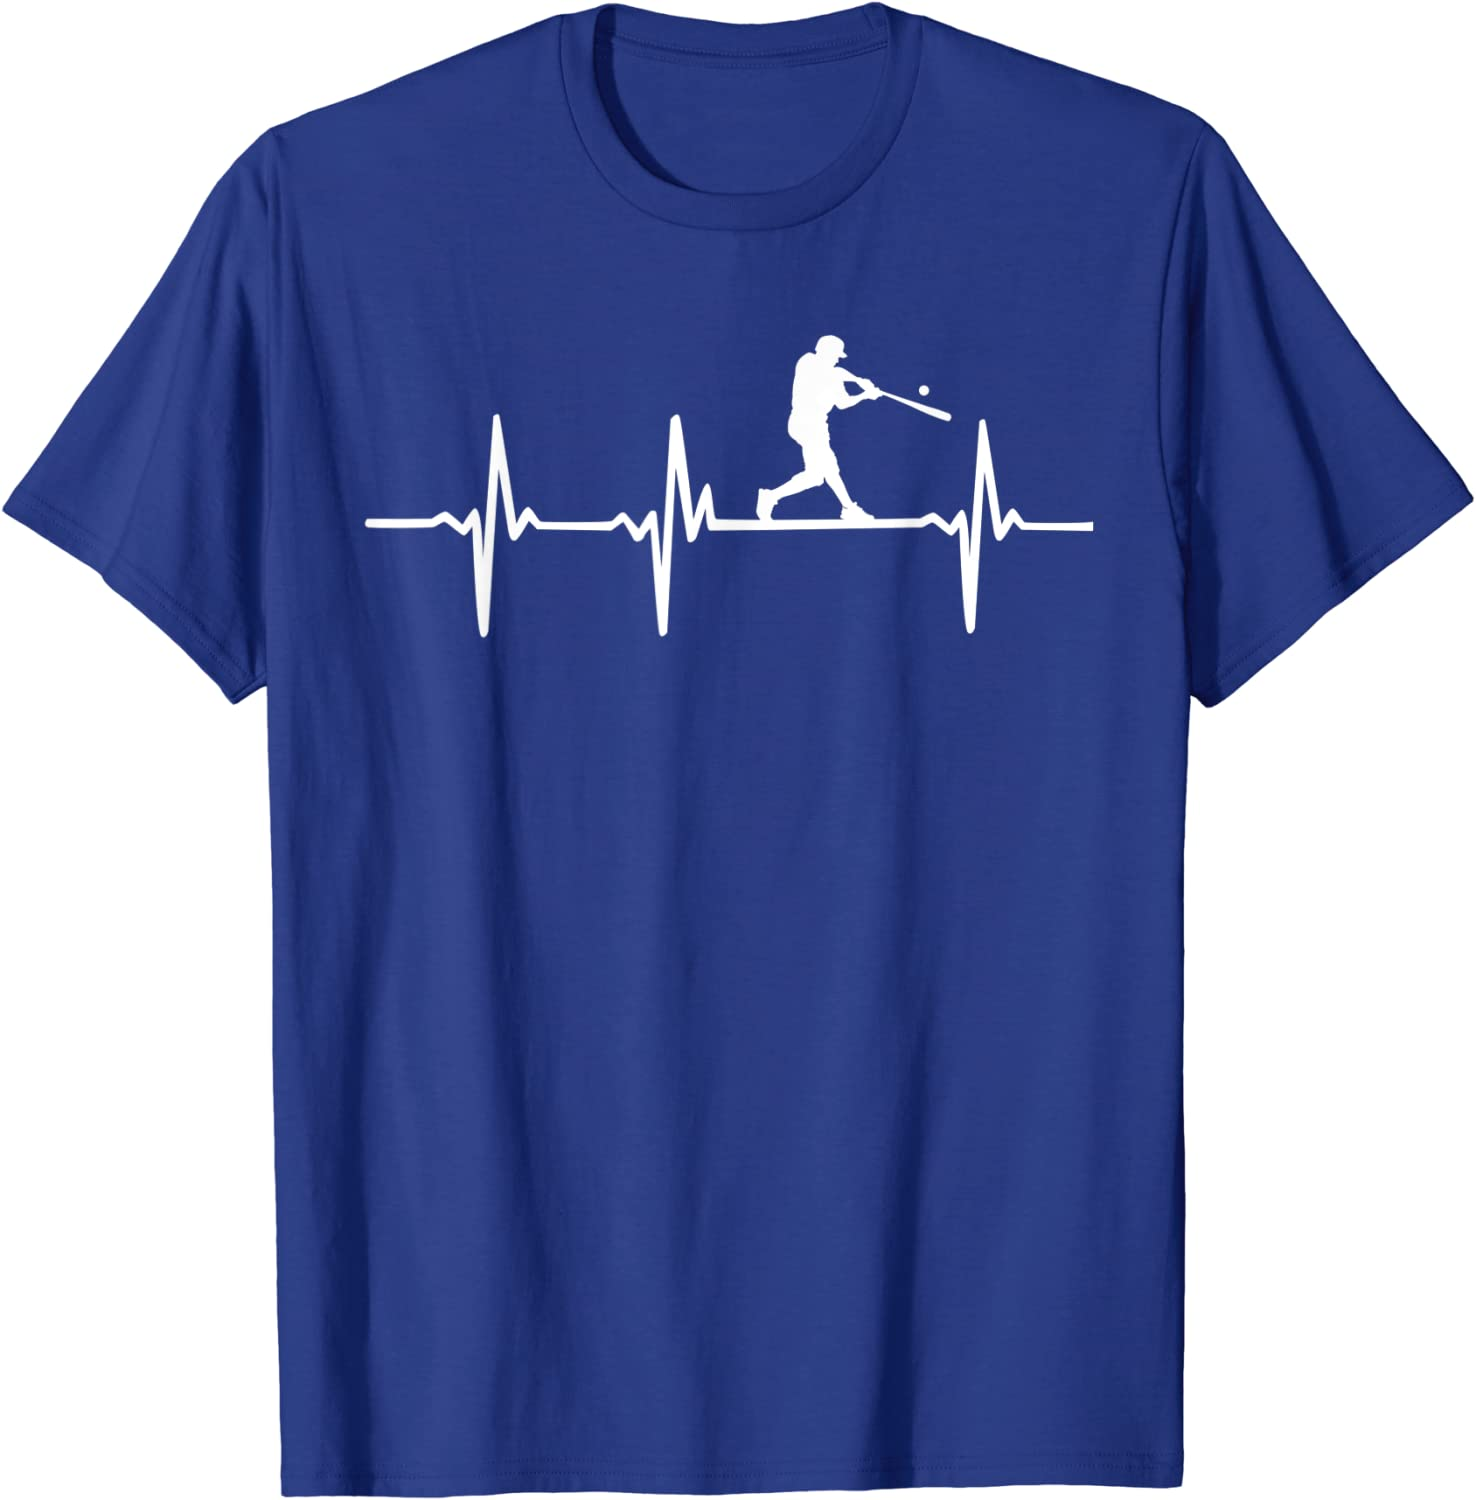 Baseball Heartbeat T-Shirt For Baseball Players And Fans-TH